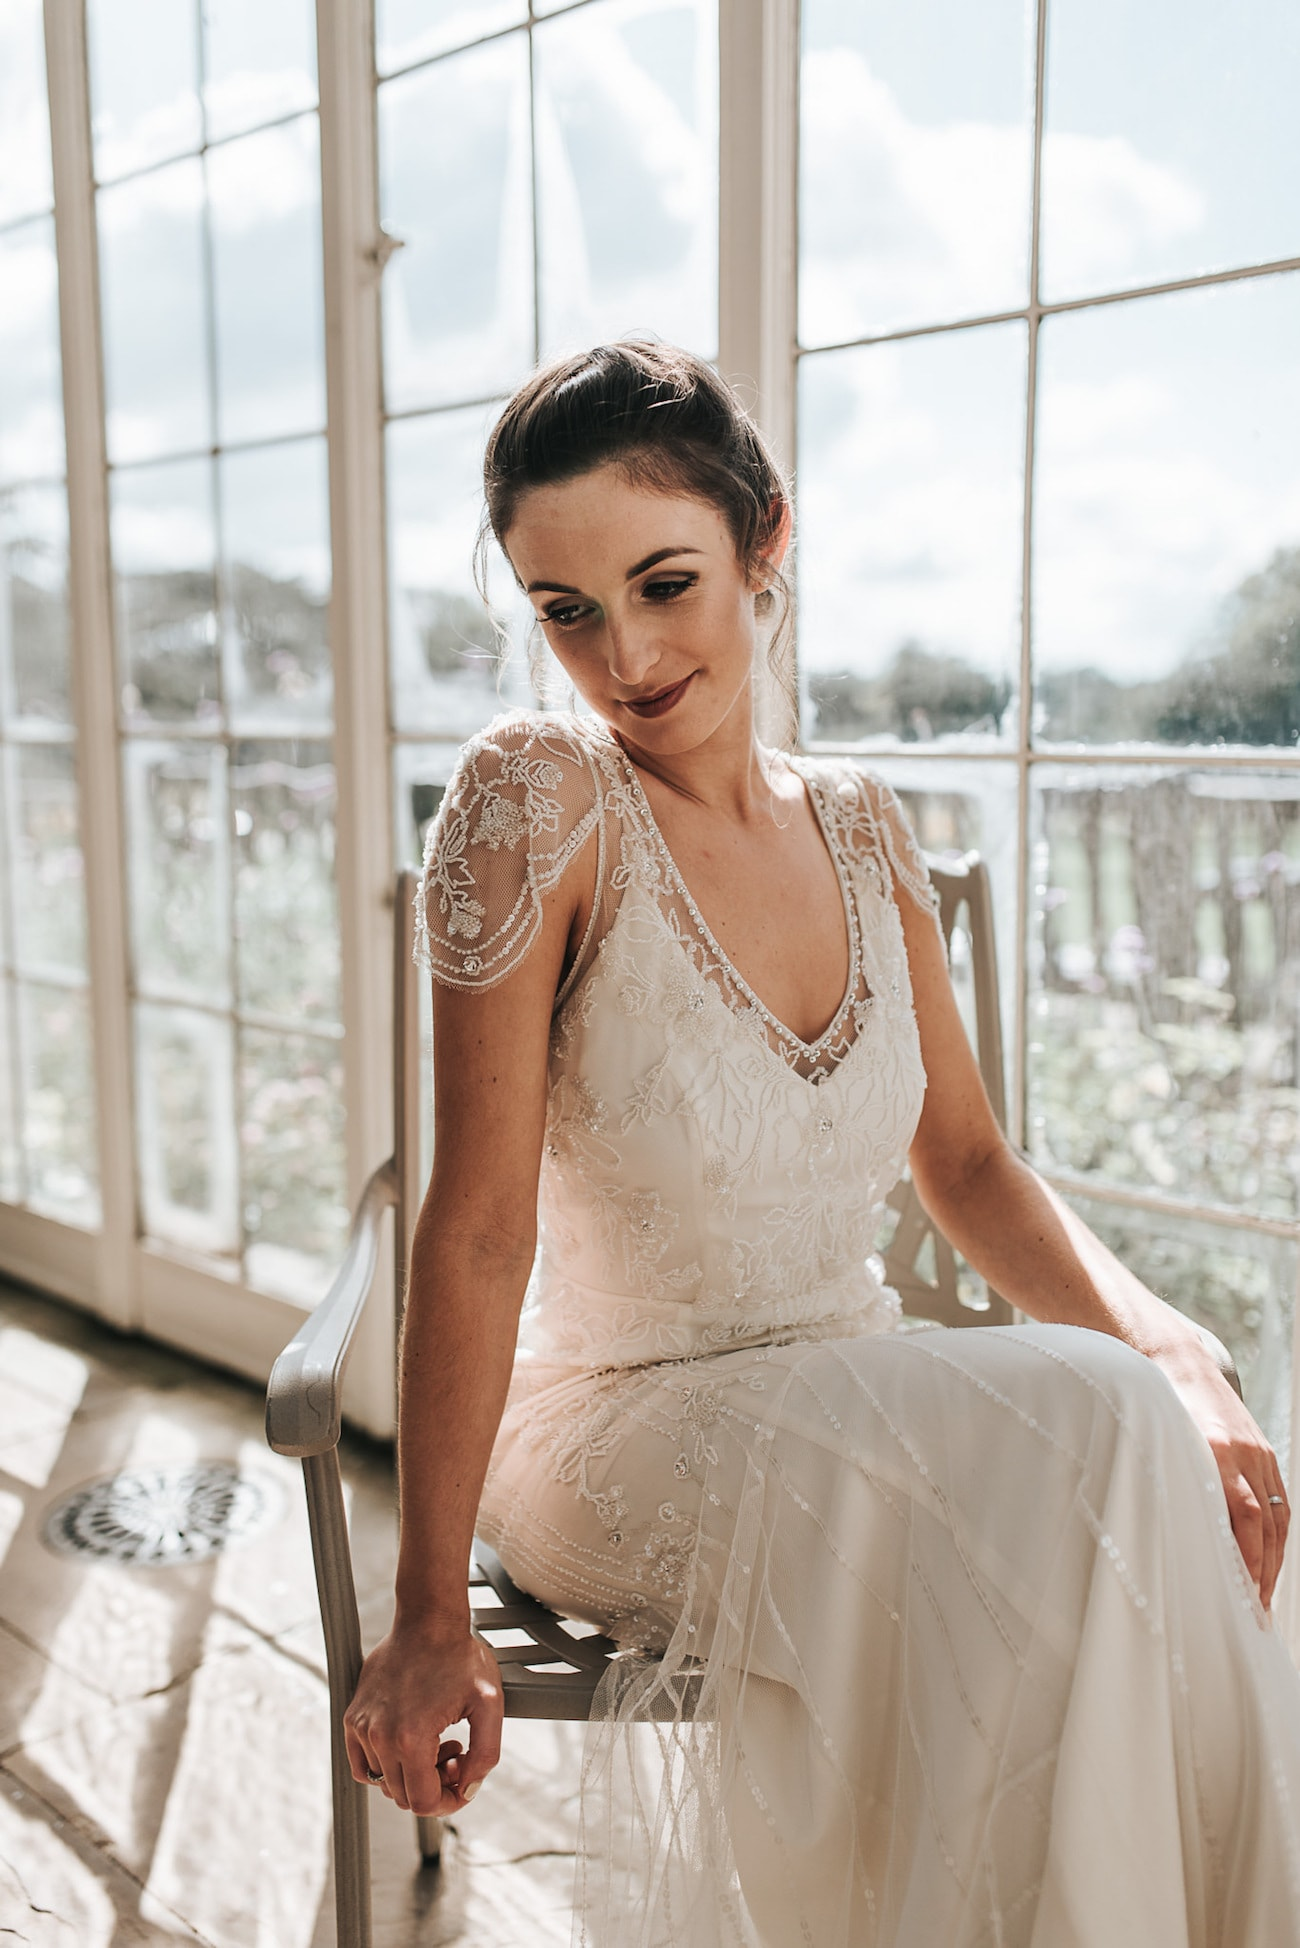 Jenny Packham Bridal | Image: Pear & Bear Photography